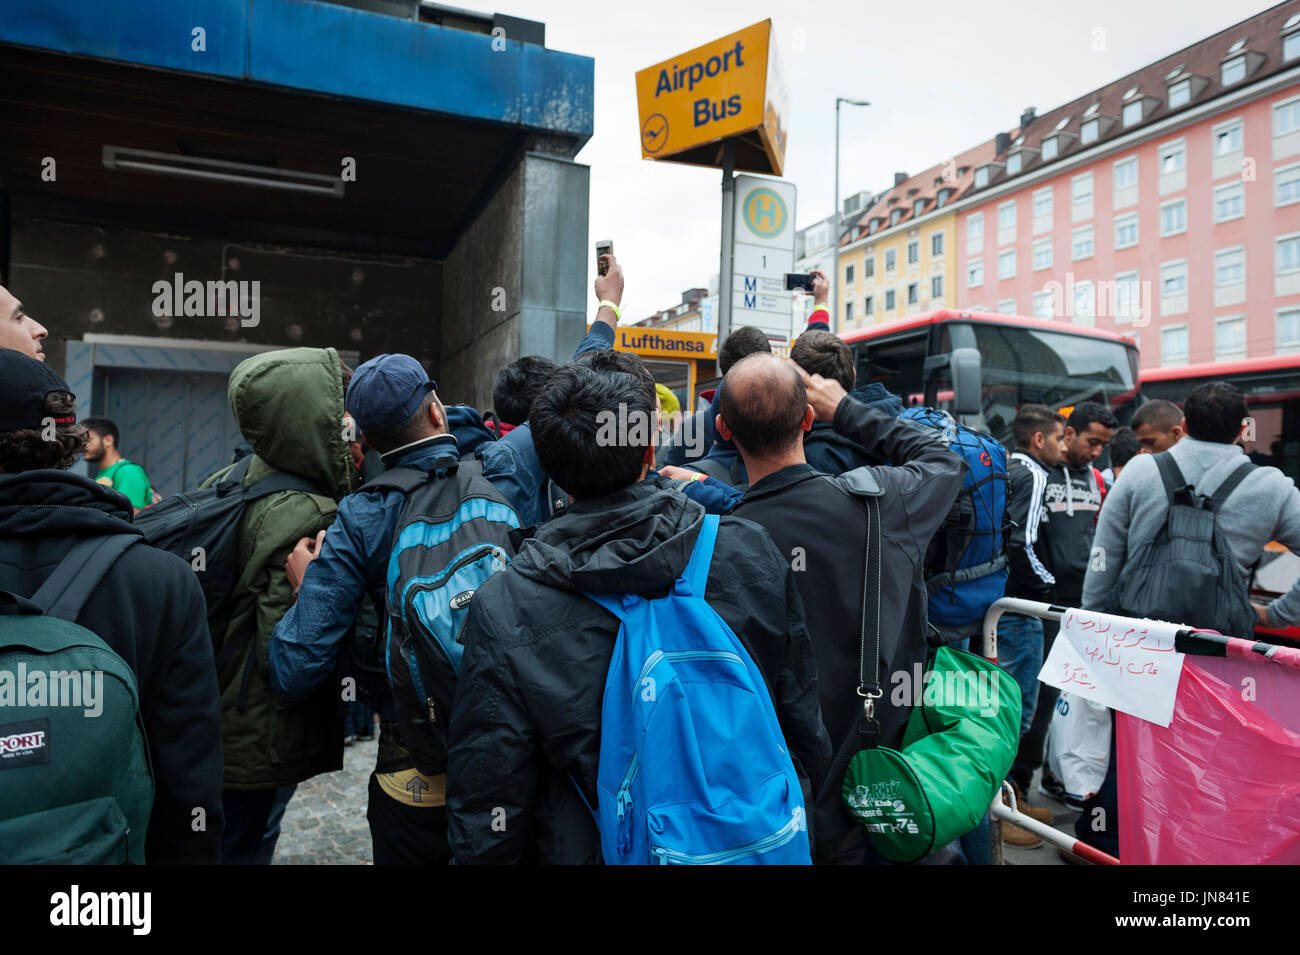 Munich, Germany -September 7th, 2015: A group of refugees from Syria at the Munich Central Station. They are seeking Stock Photo